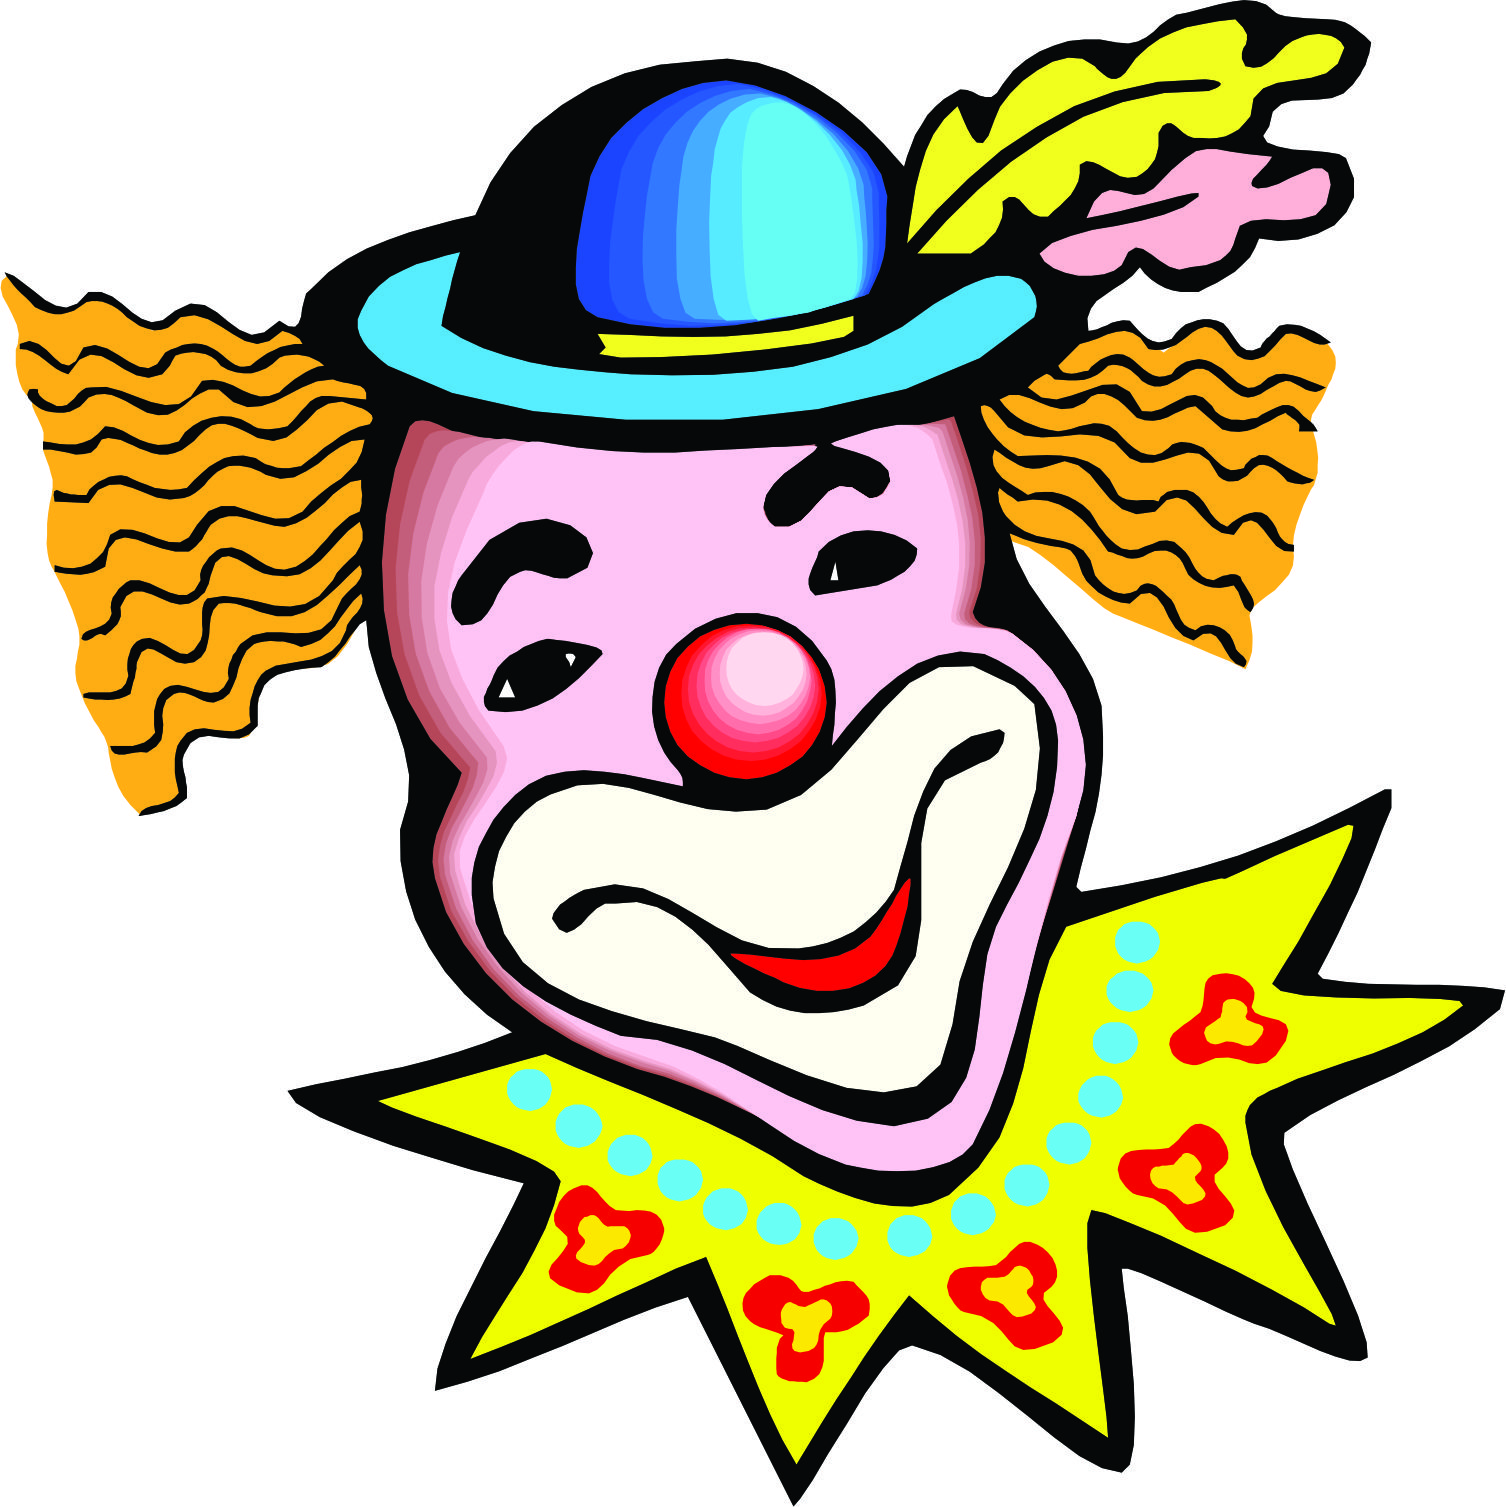 Circus joker face clipart clip art black and white download Cartoon Clown Face | Free Download Clip Art | Free Clip Art | on ... clip art black and white download